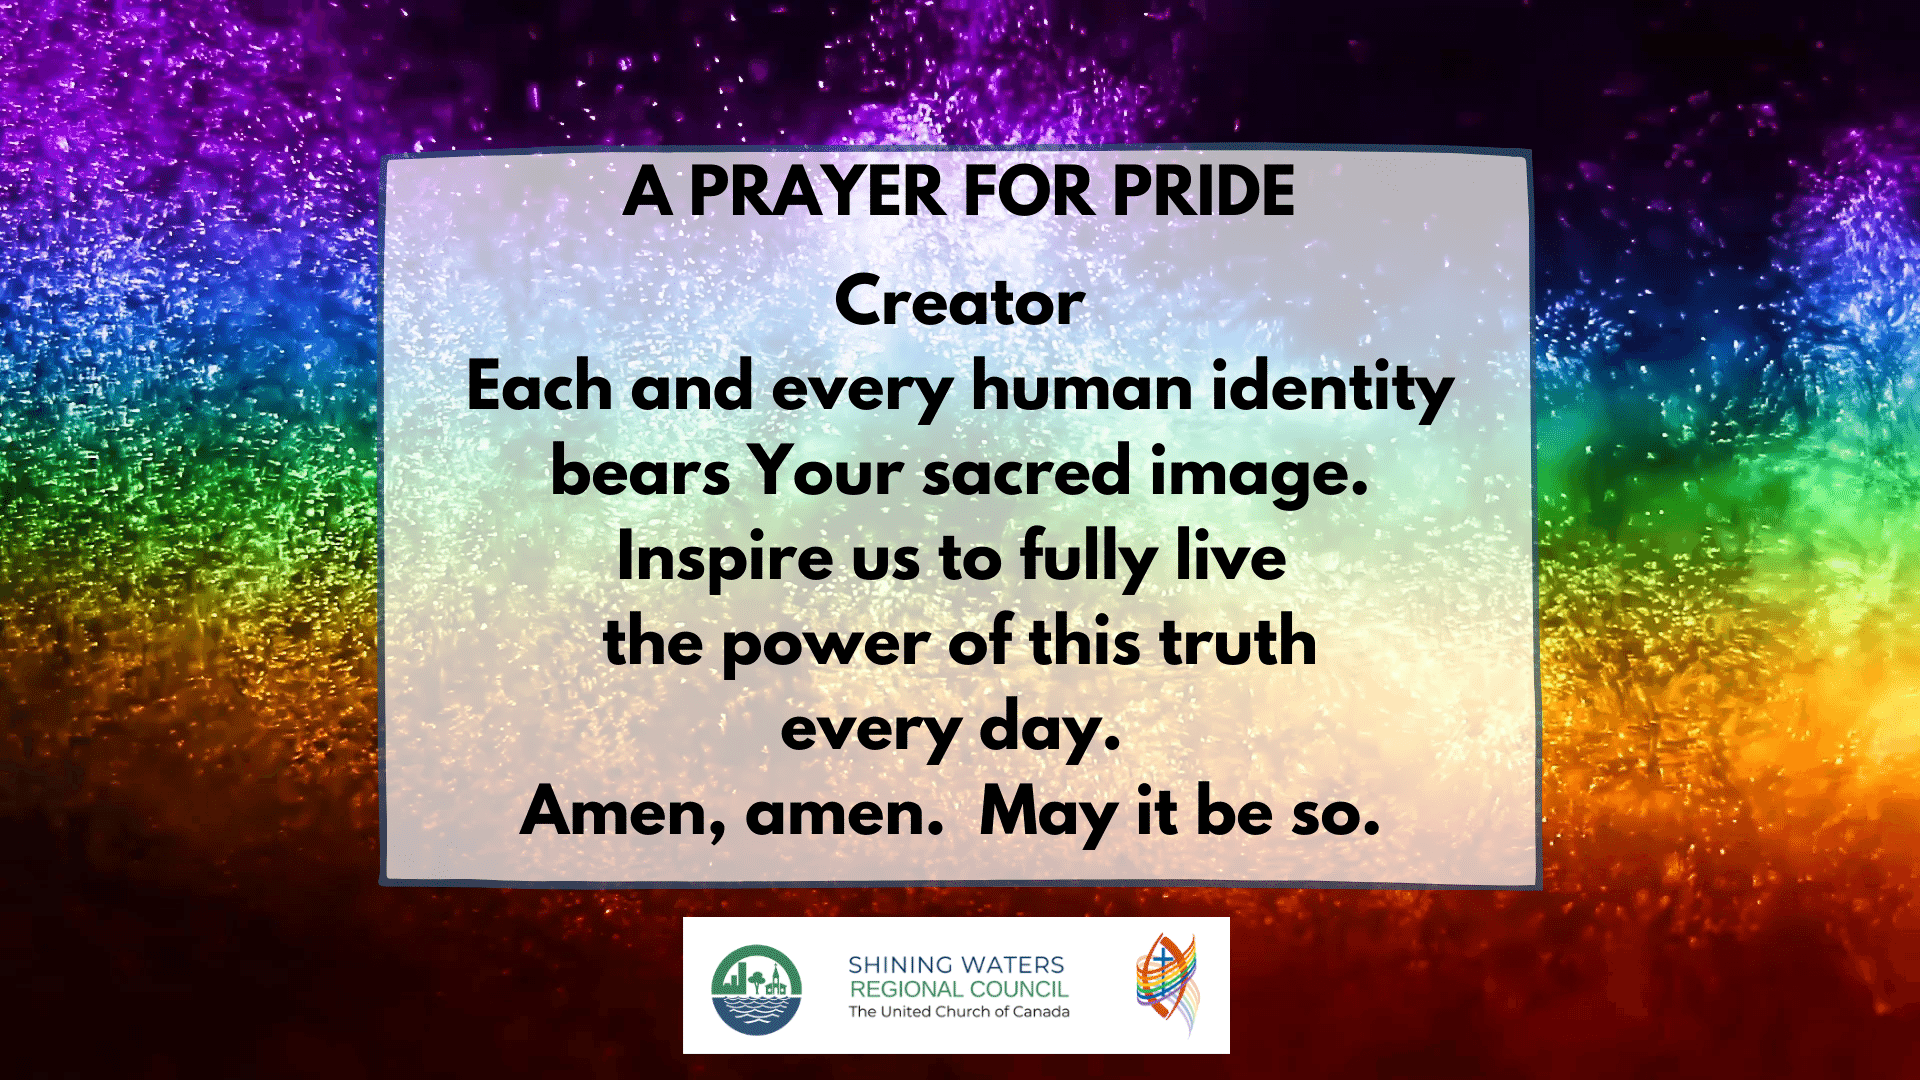 A prayer for pride with rainbow fireworks background